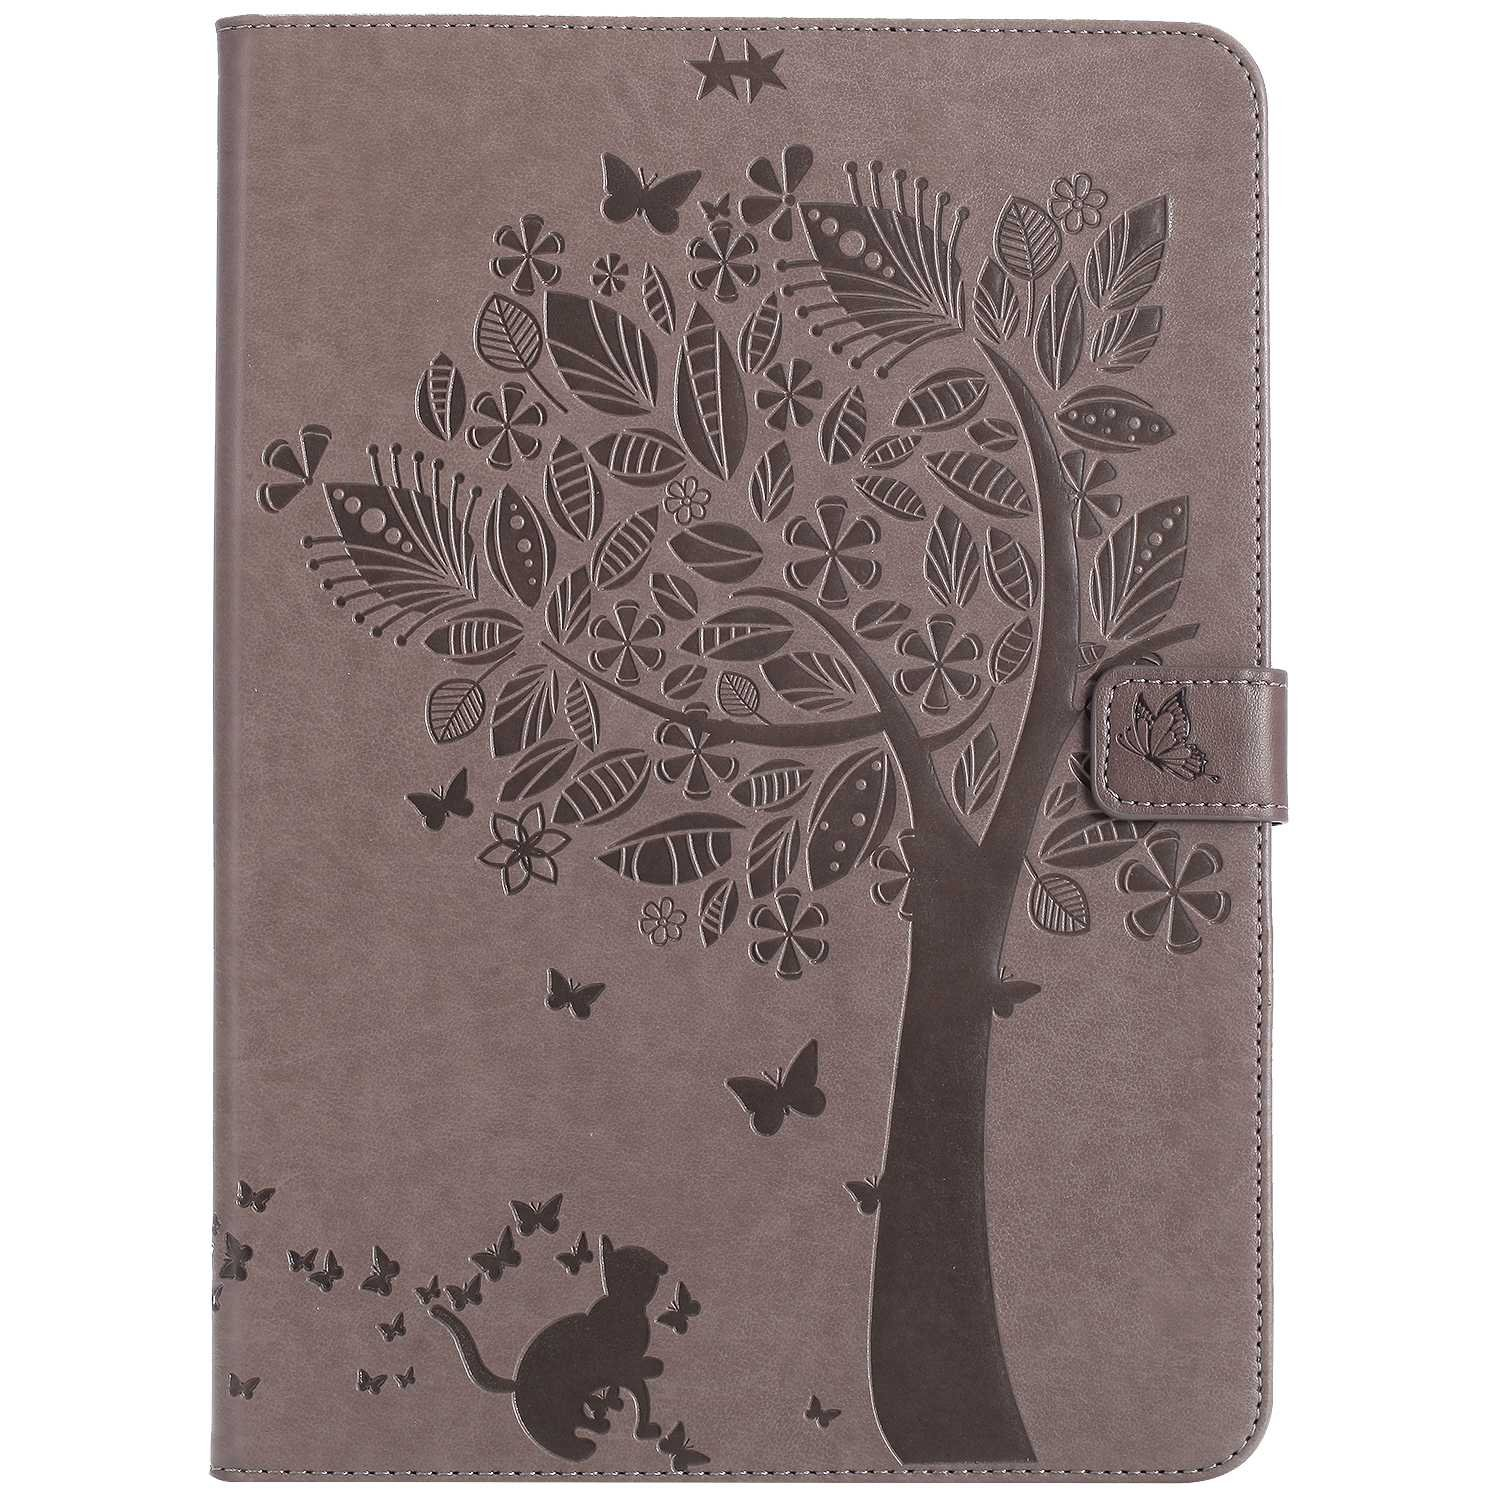 Bear Village iPad 2017 / iPad 2018 (9.7 Inch) Case, Leather Magnetic Case, Fullbody Protective Cover with Stand Function for Apple iPad 2017 / iPad 2018 (9.7 Inch), Gray by Bear Village